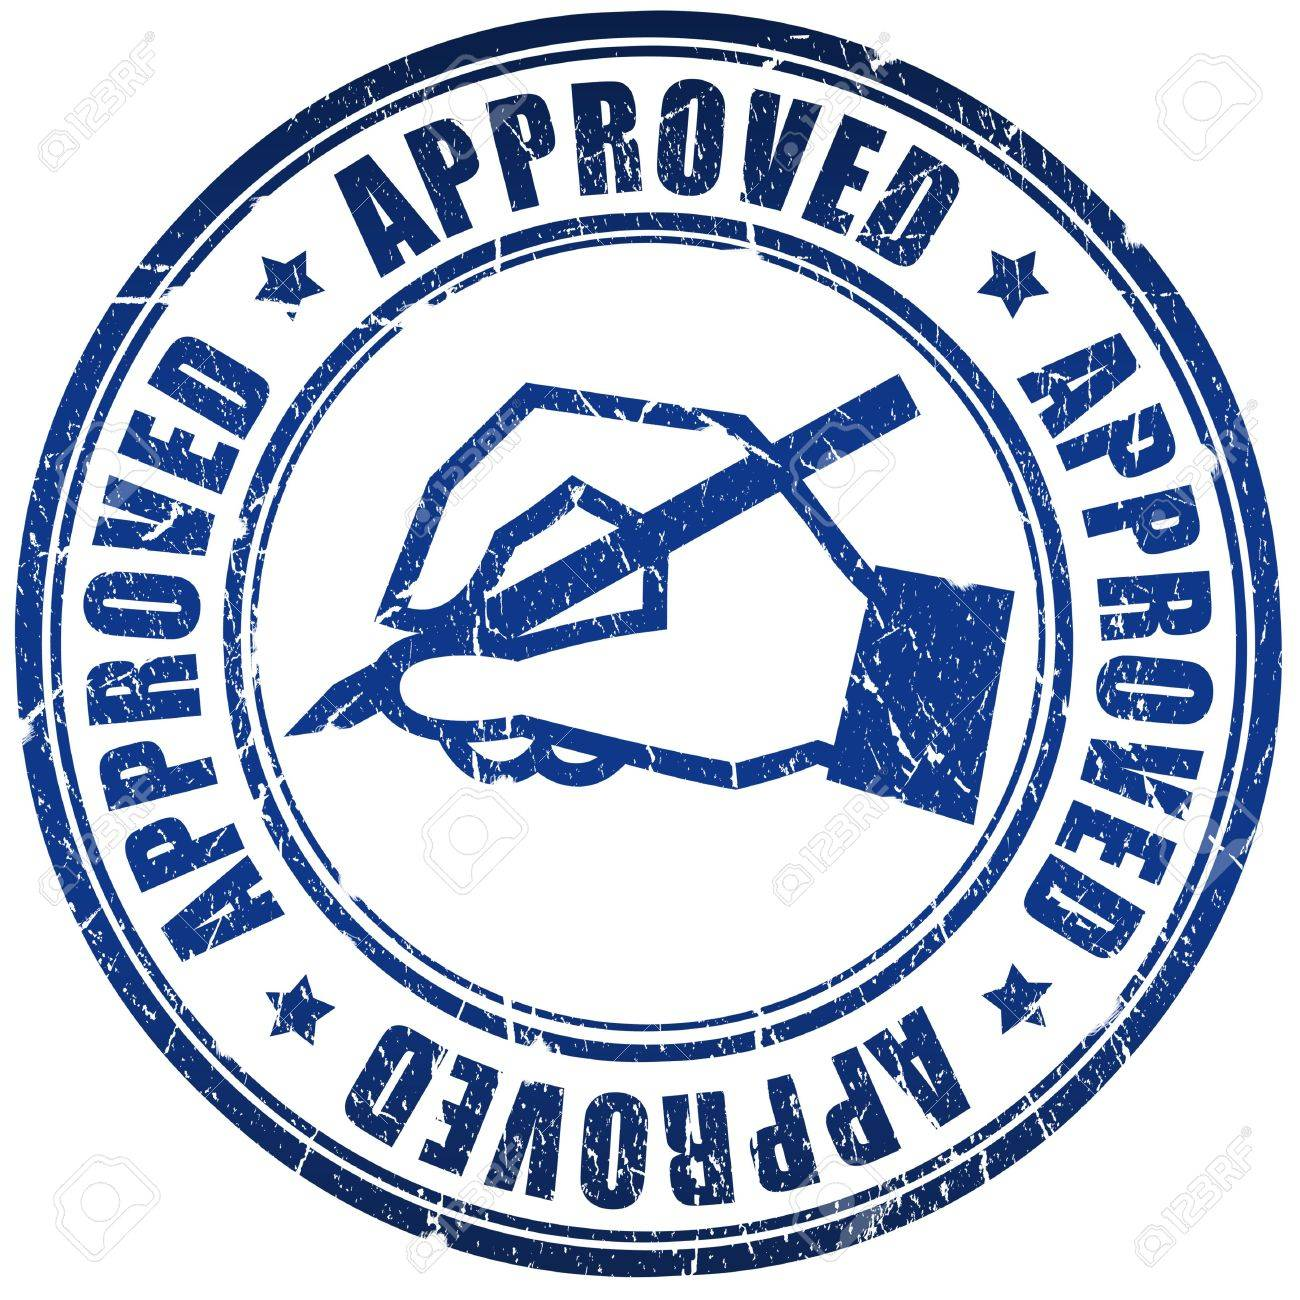 Approved stamp Stock Photo - 7014841